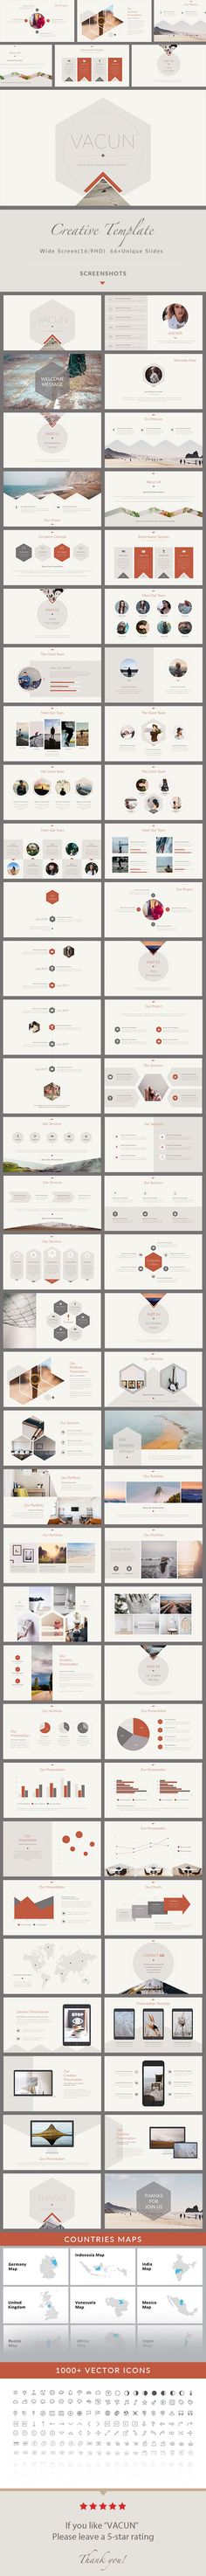 VACUN  Creative Keynote Presentation Template — Keynote KEY #infographic #retro • Available here ➝ https://graphicriver.net/item/vacun-creative-keynote-presentation-template/20865194?ref=pxcr